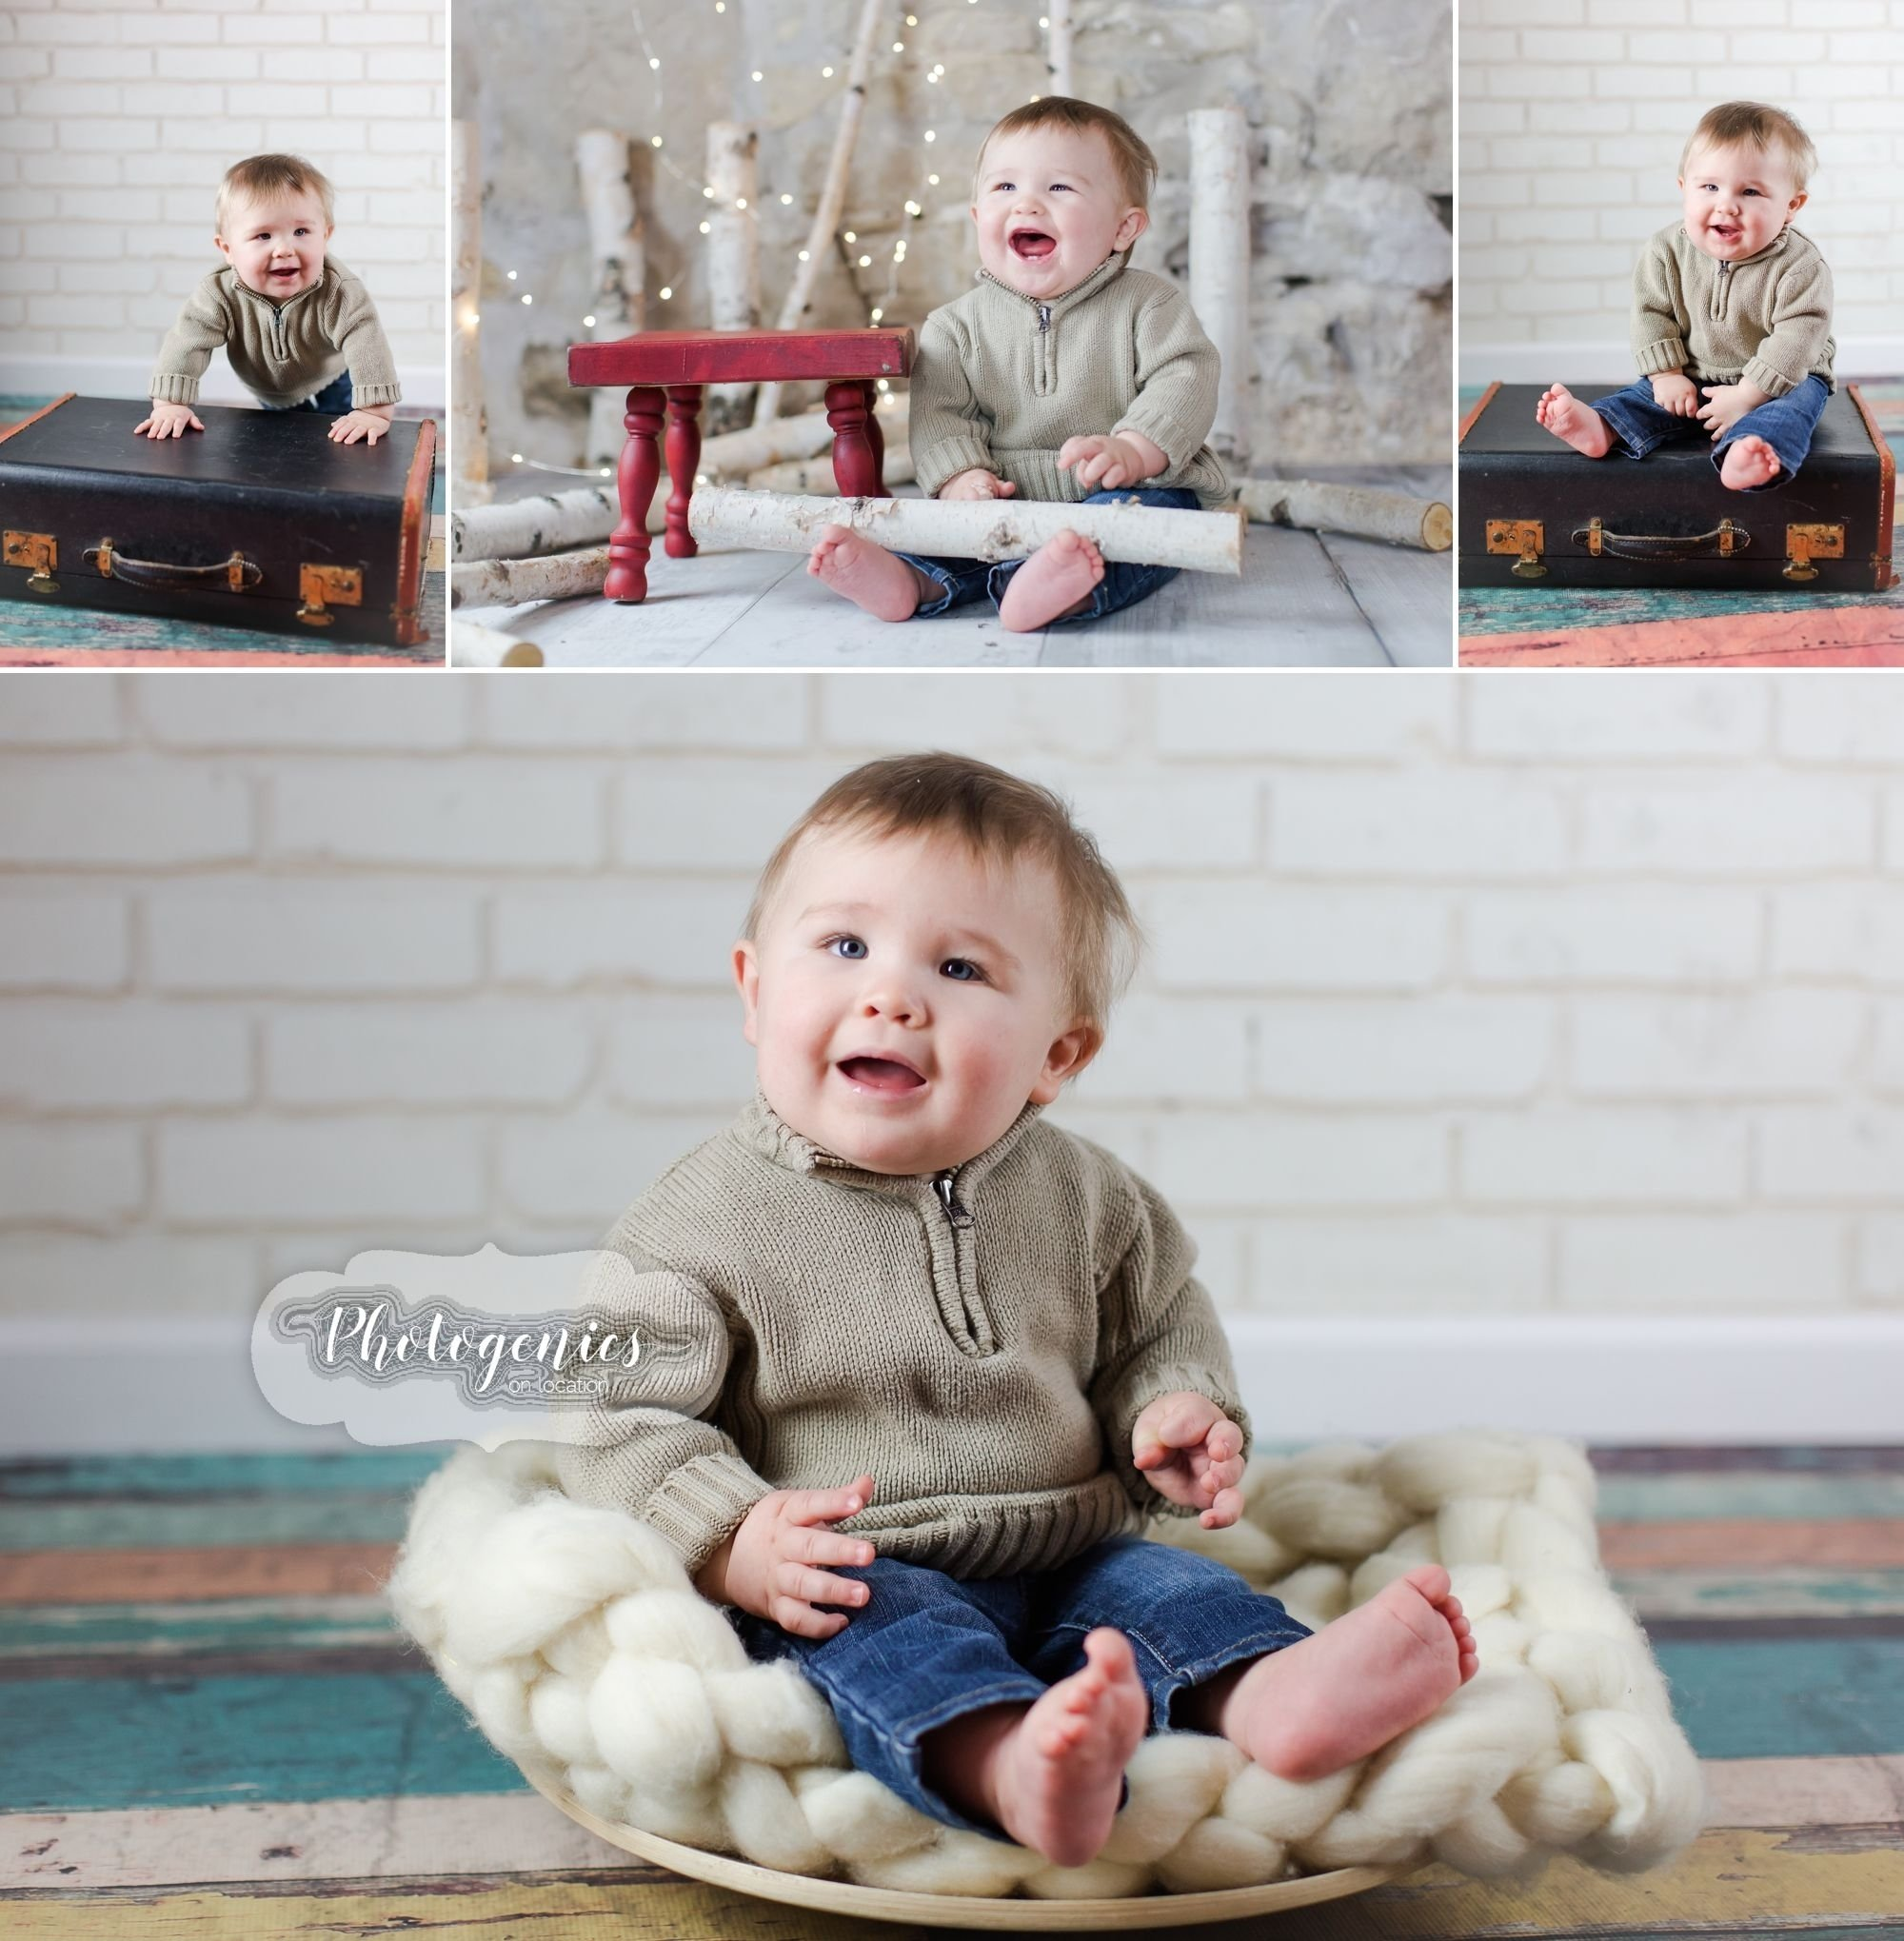 10 Ideal 9 Month Baby Picture Ideas callies sitting up session baby boy pics photography photos and 4 2020